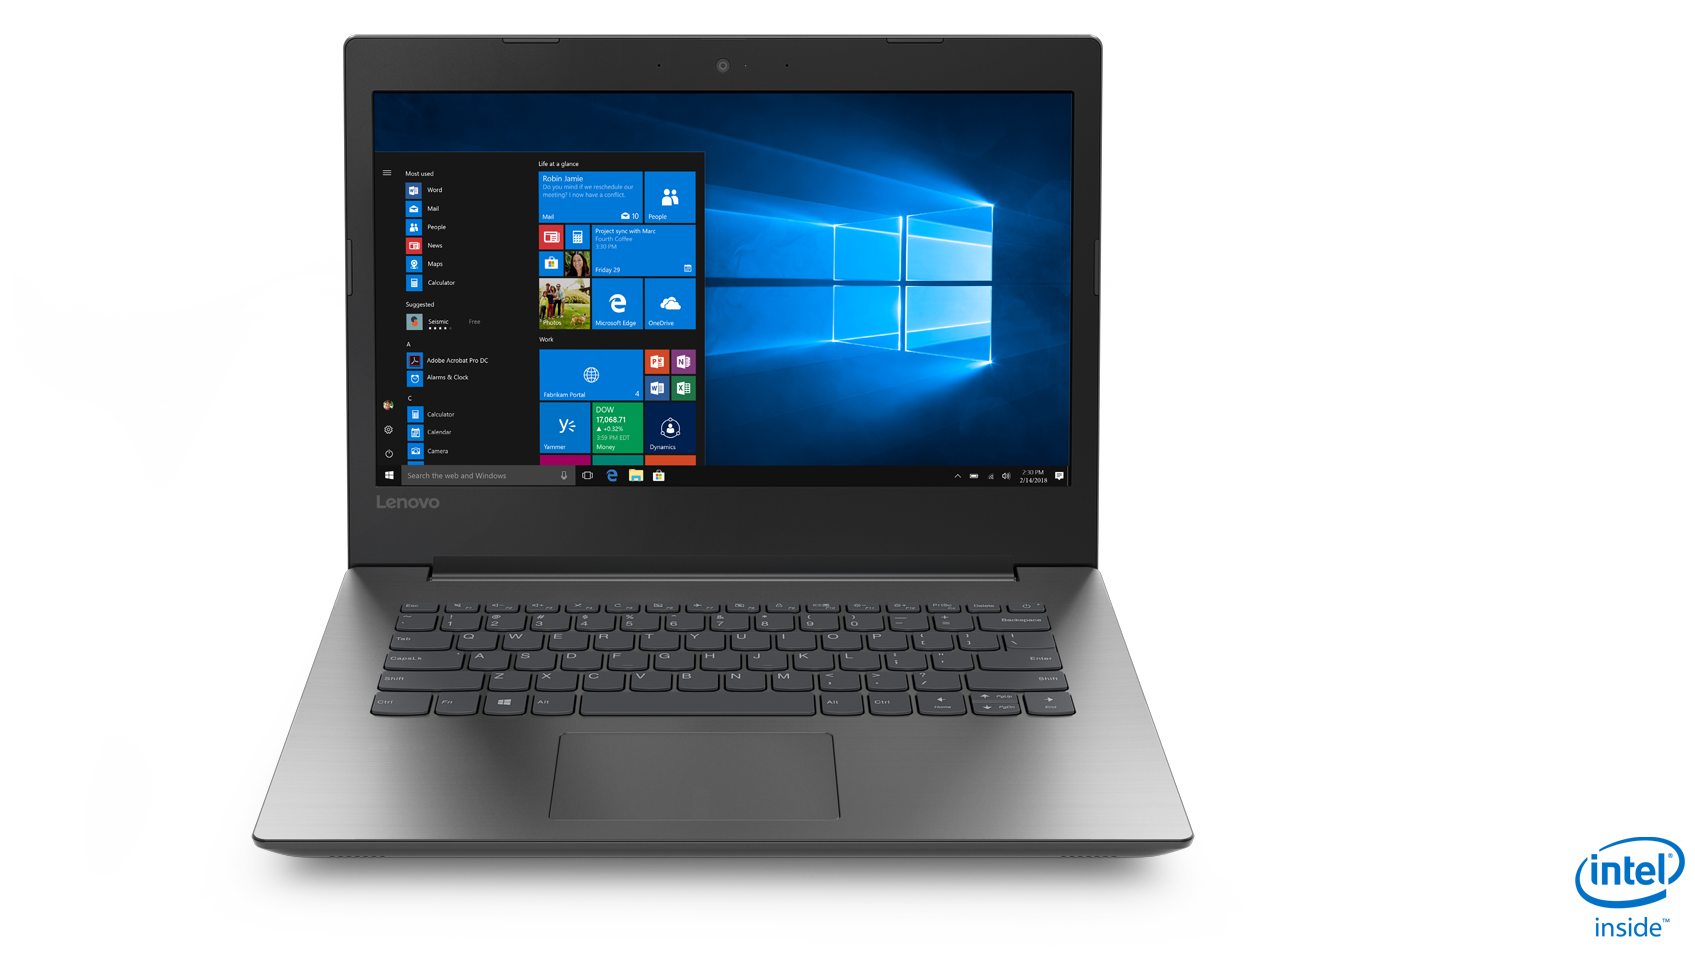 Lenovo Ideapad 330 (Core i5 - 8th Gen/8 GB RAM/1 TB HDD/39.624 cm (15.6 inch)/DOS/4 GB Graphics) 81DE01JXIN (Onyx Black 2.2 Kg)